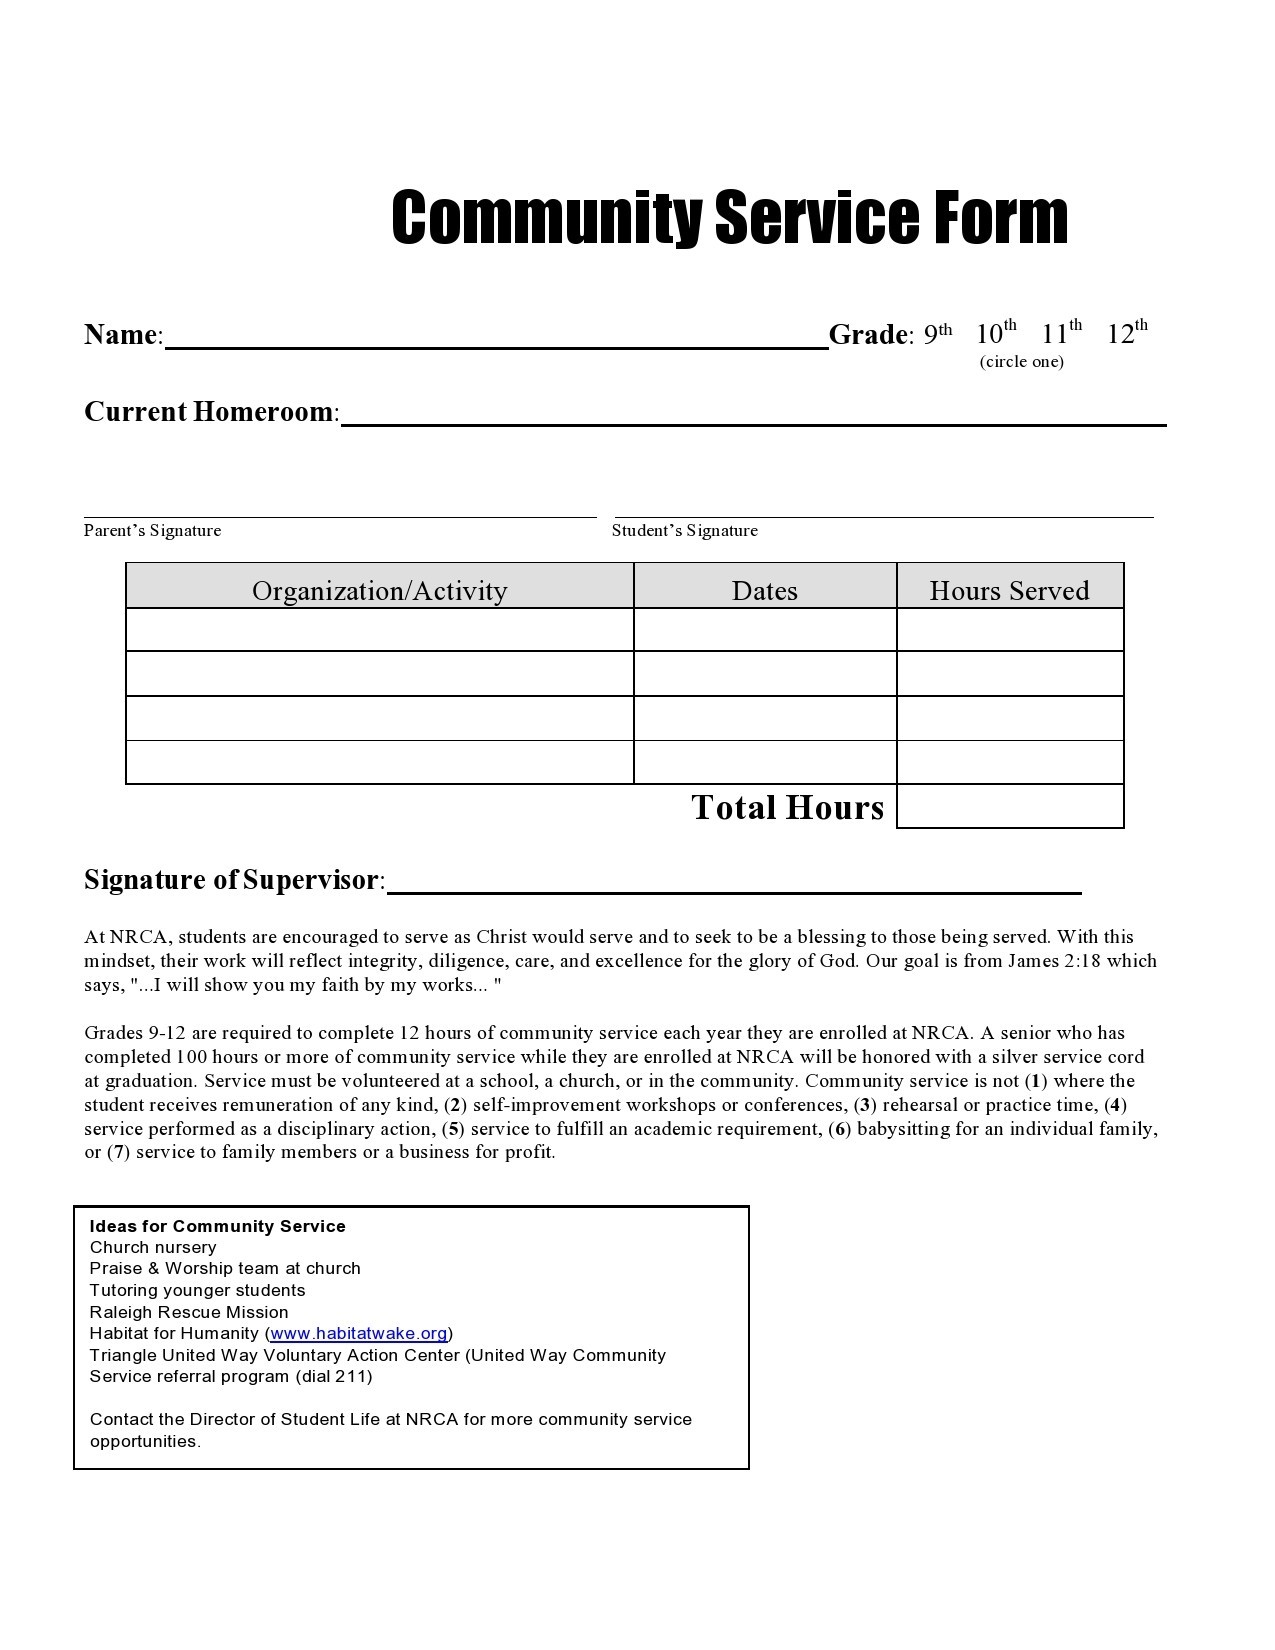 Free community service form 22